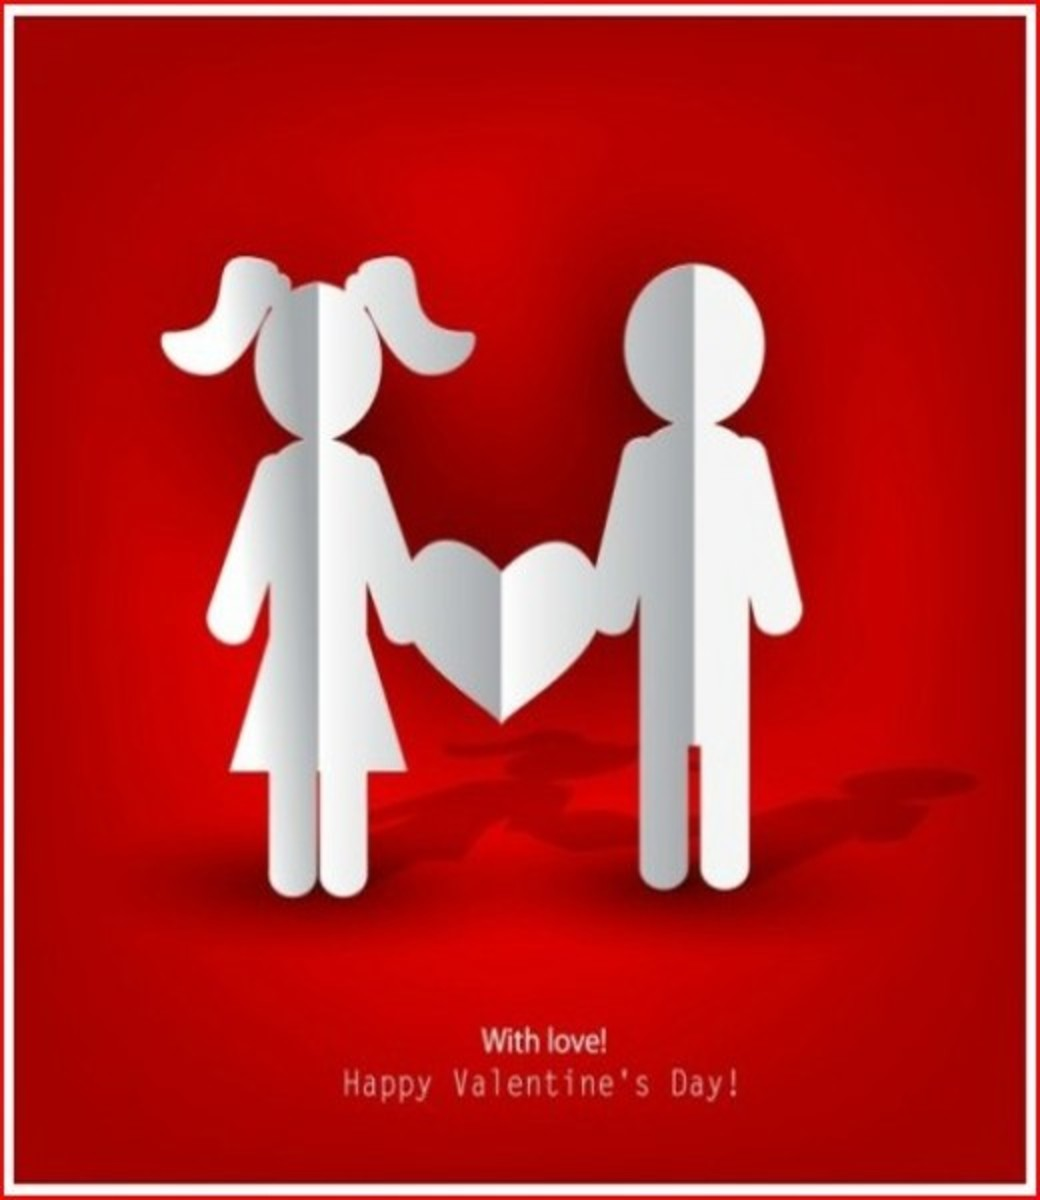 Valentine's Day Card with Love